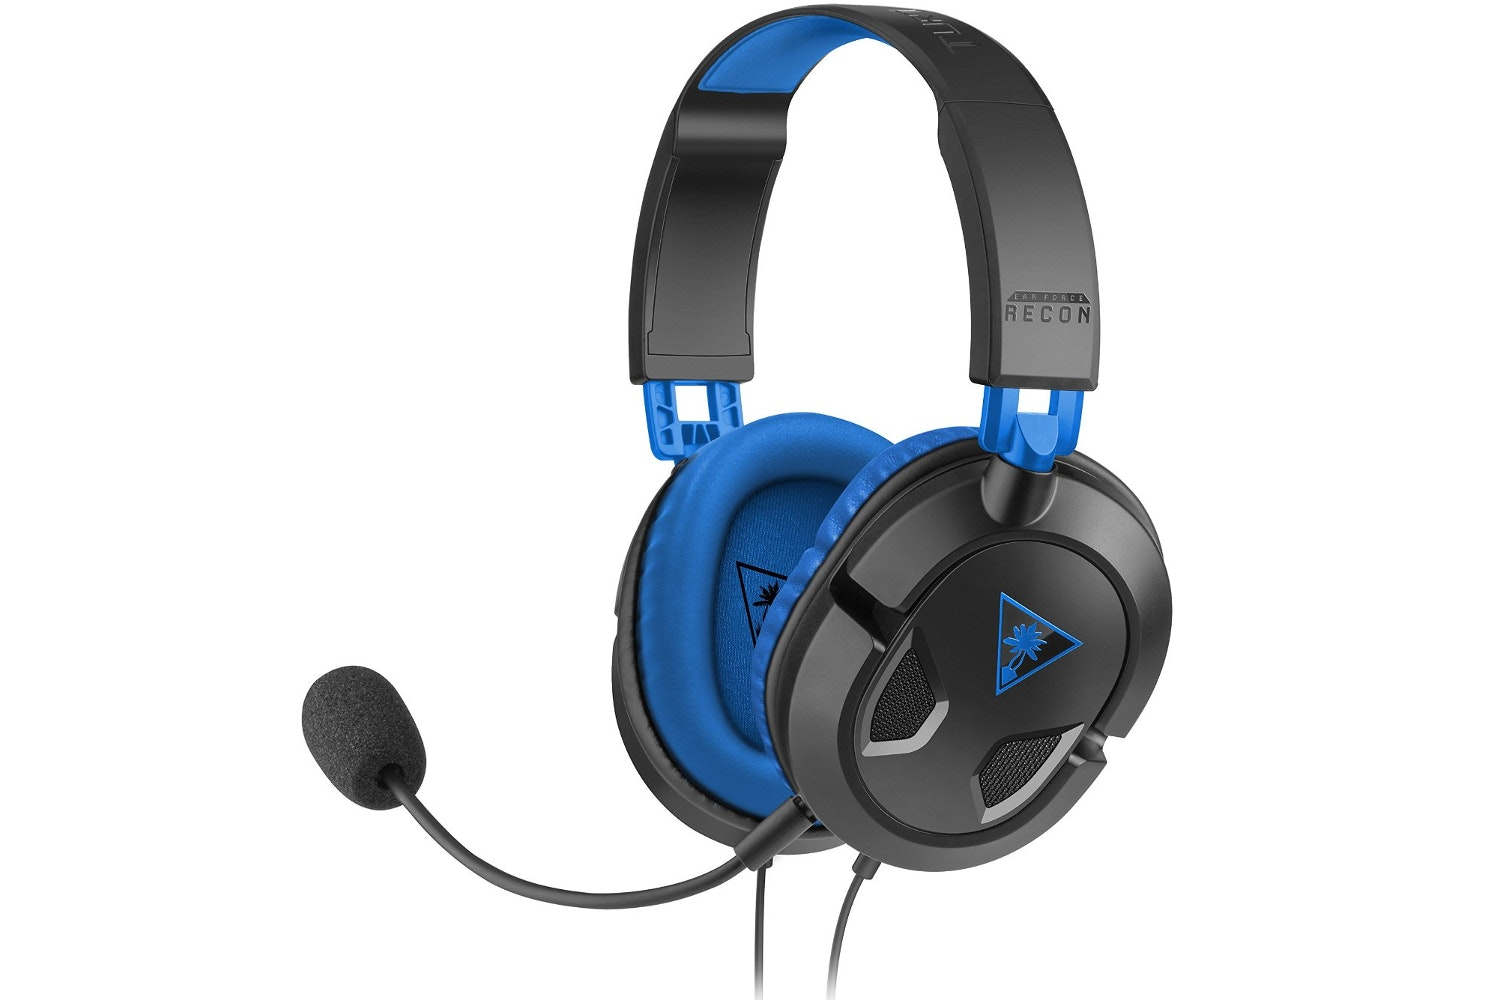 Turtle Beach Recon 60P Gaming Headset